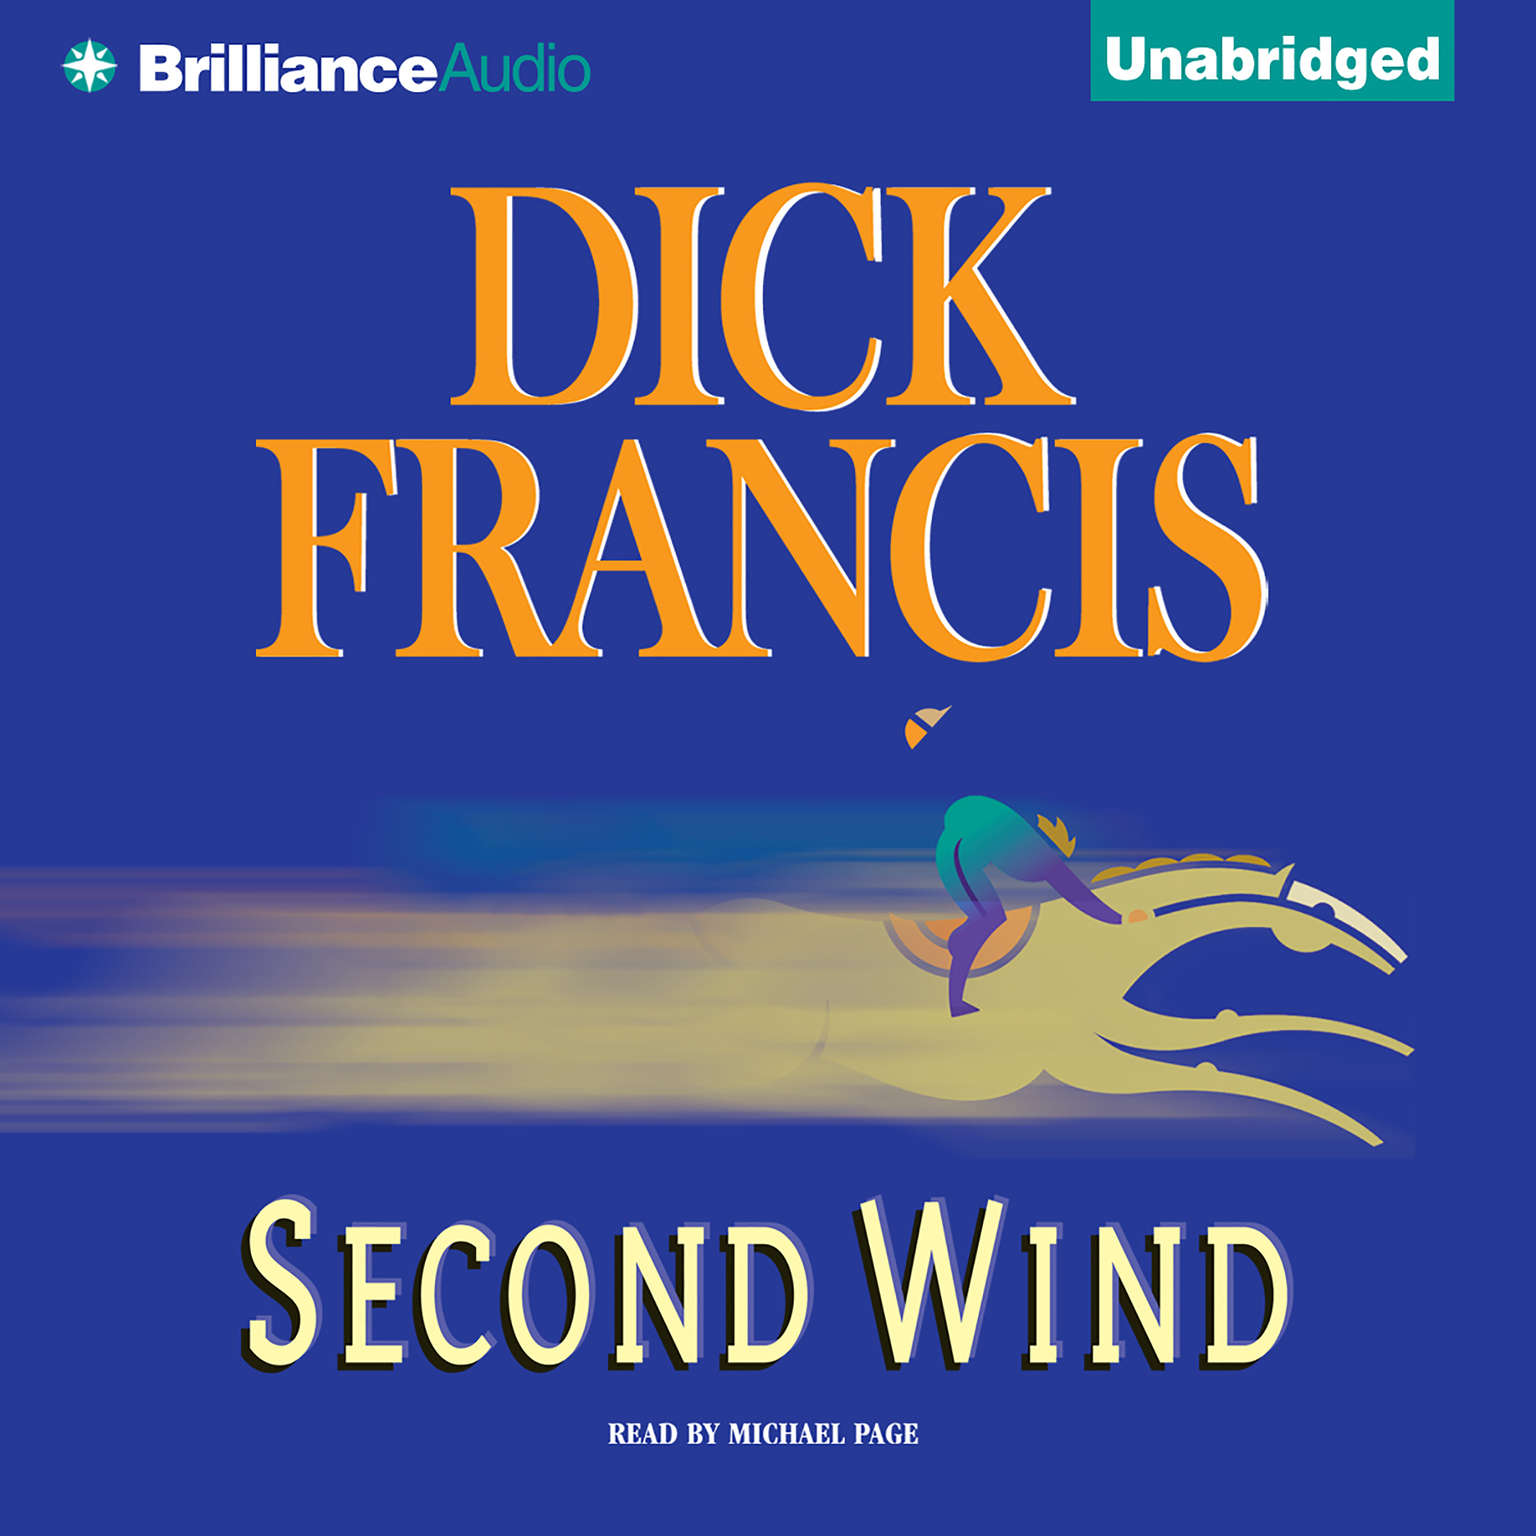 Under tony dick britton francis orders